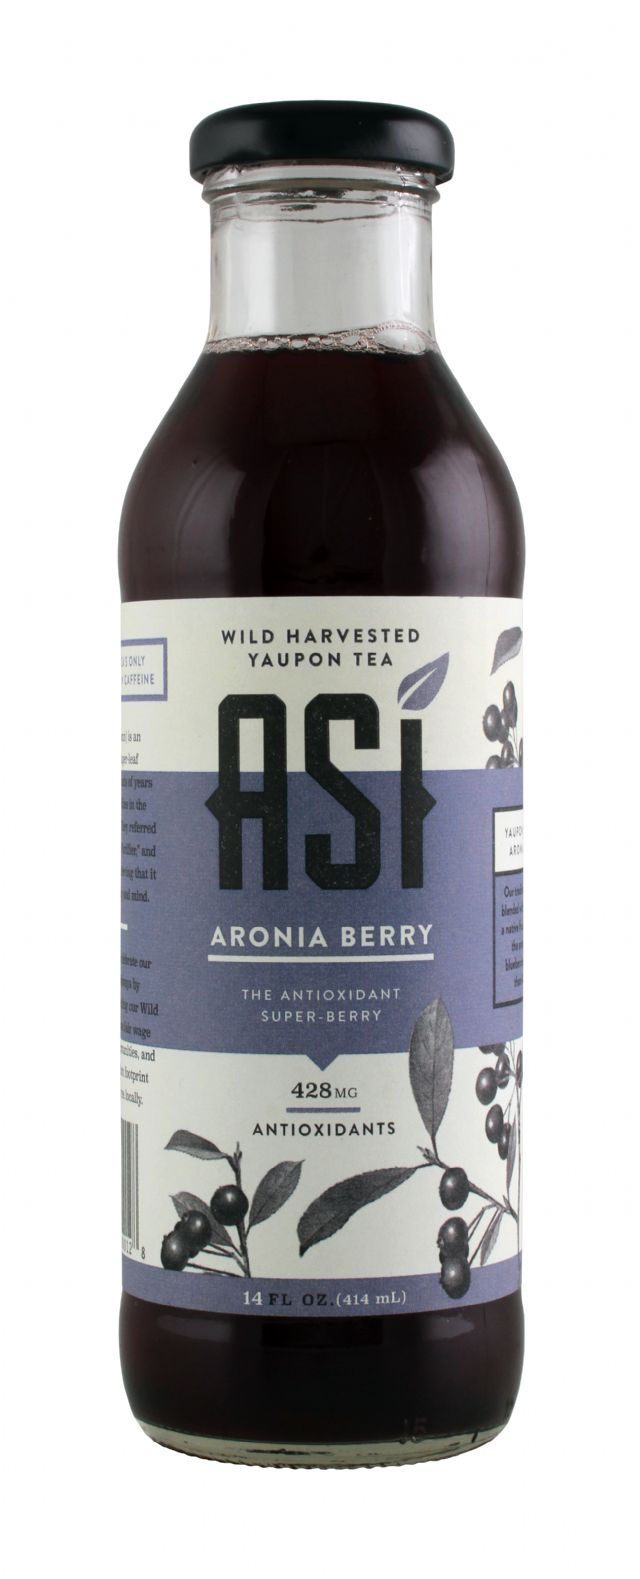 49330054.asi.aroniaberry.front.jpg